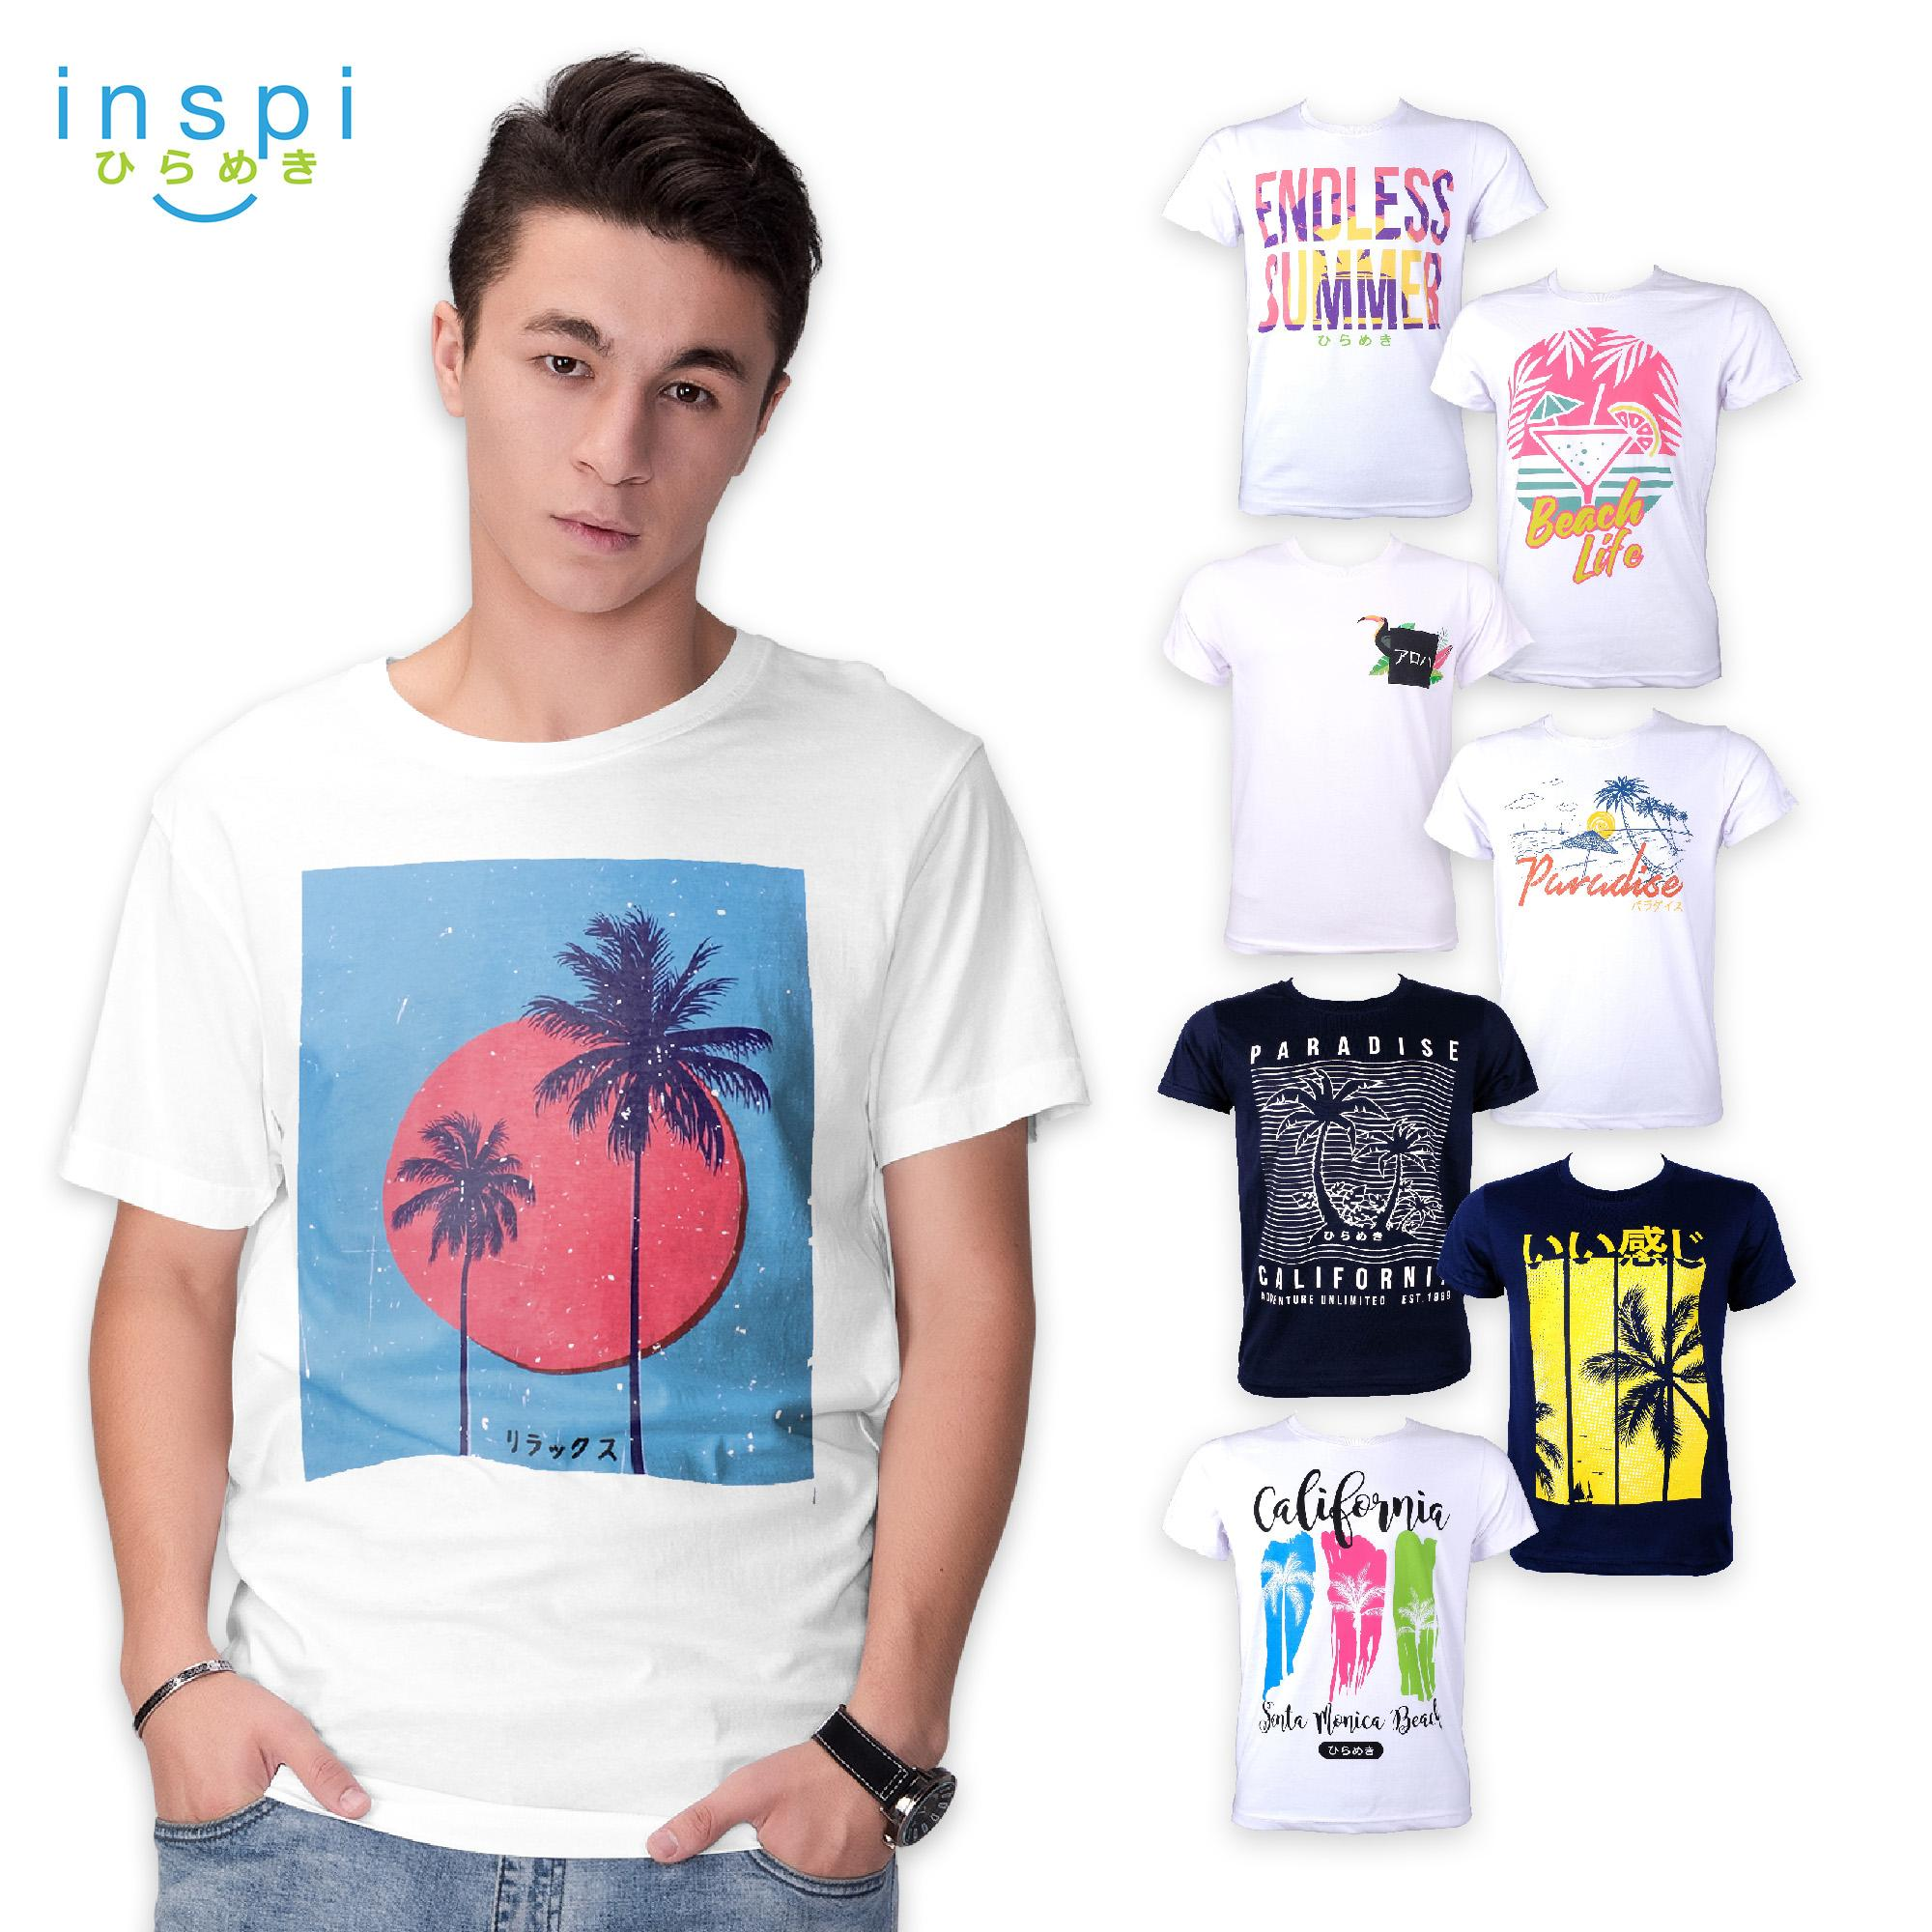 b12d7e5b04 INSPI Tees Summer Collection tshirt printed graphic tee Mens t shirt shirts  for men tshirts sale